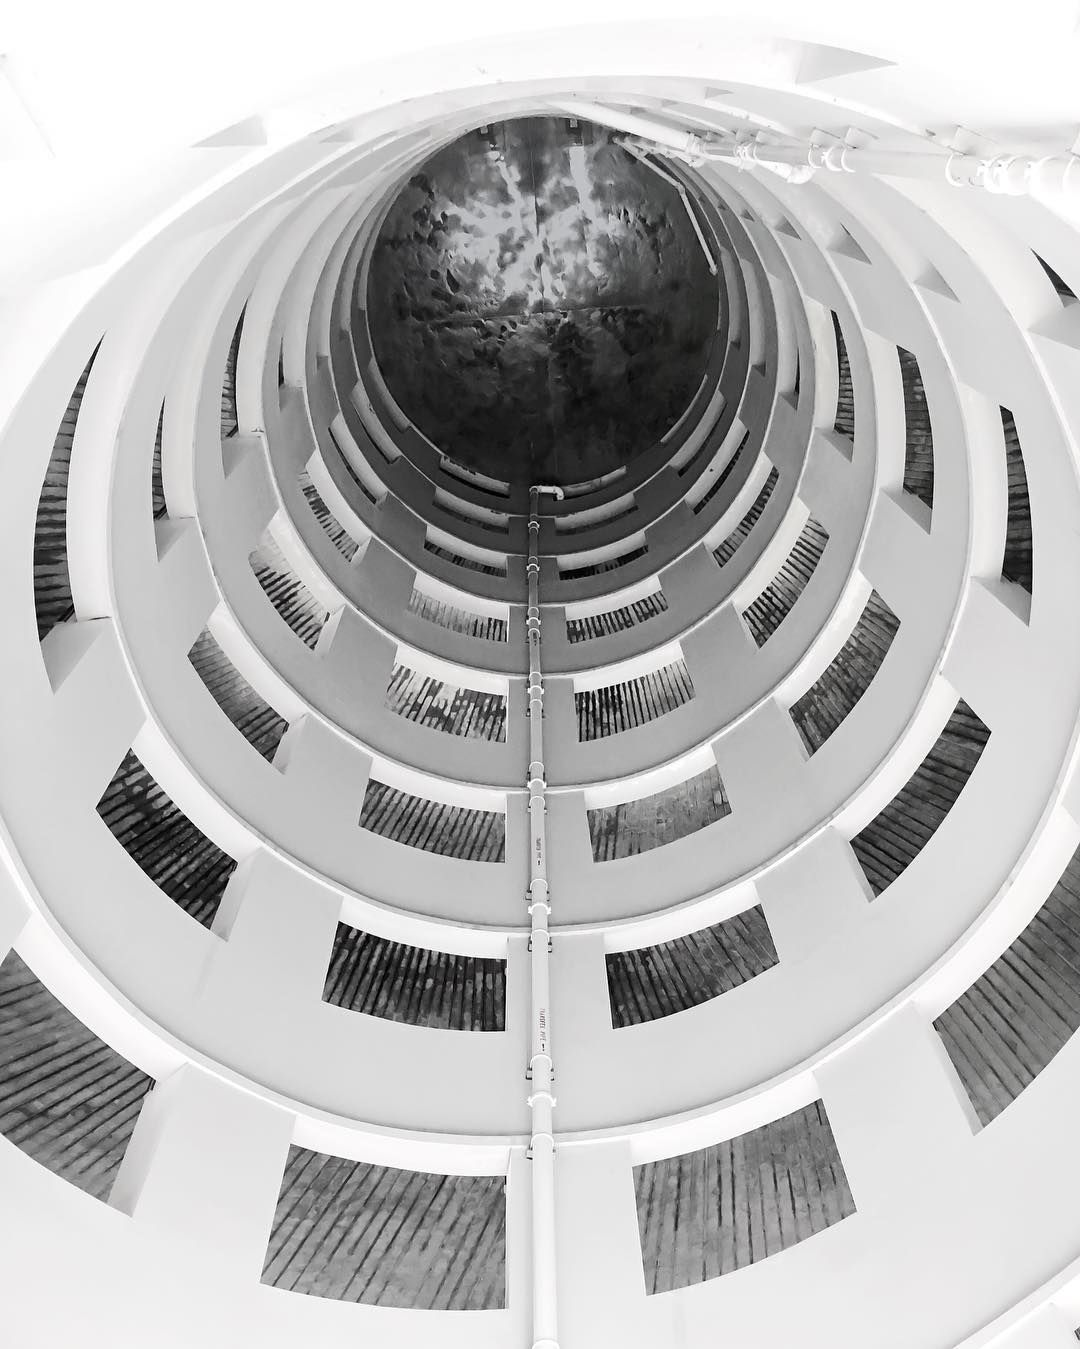 [exploresingapore] . Look down or look up? by